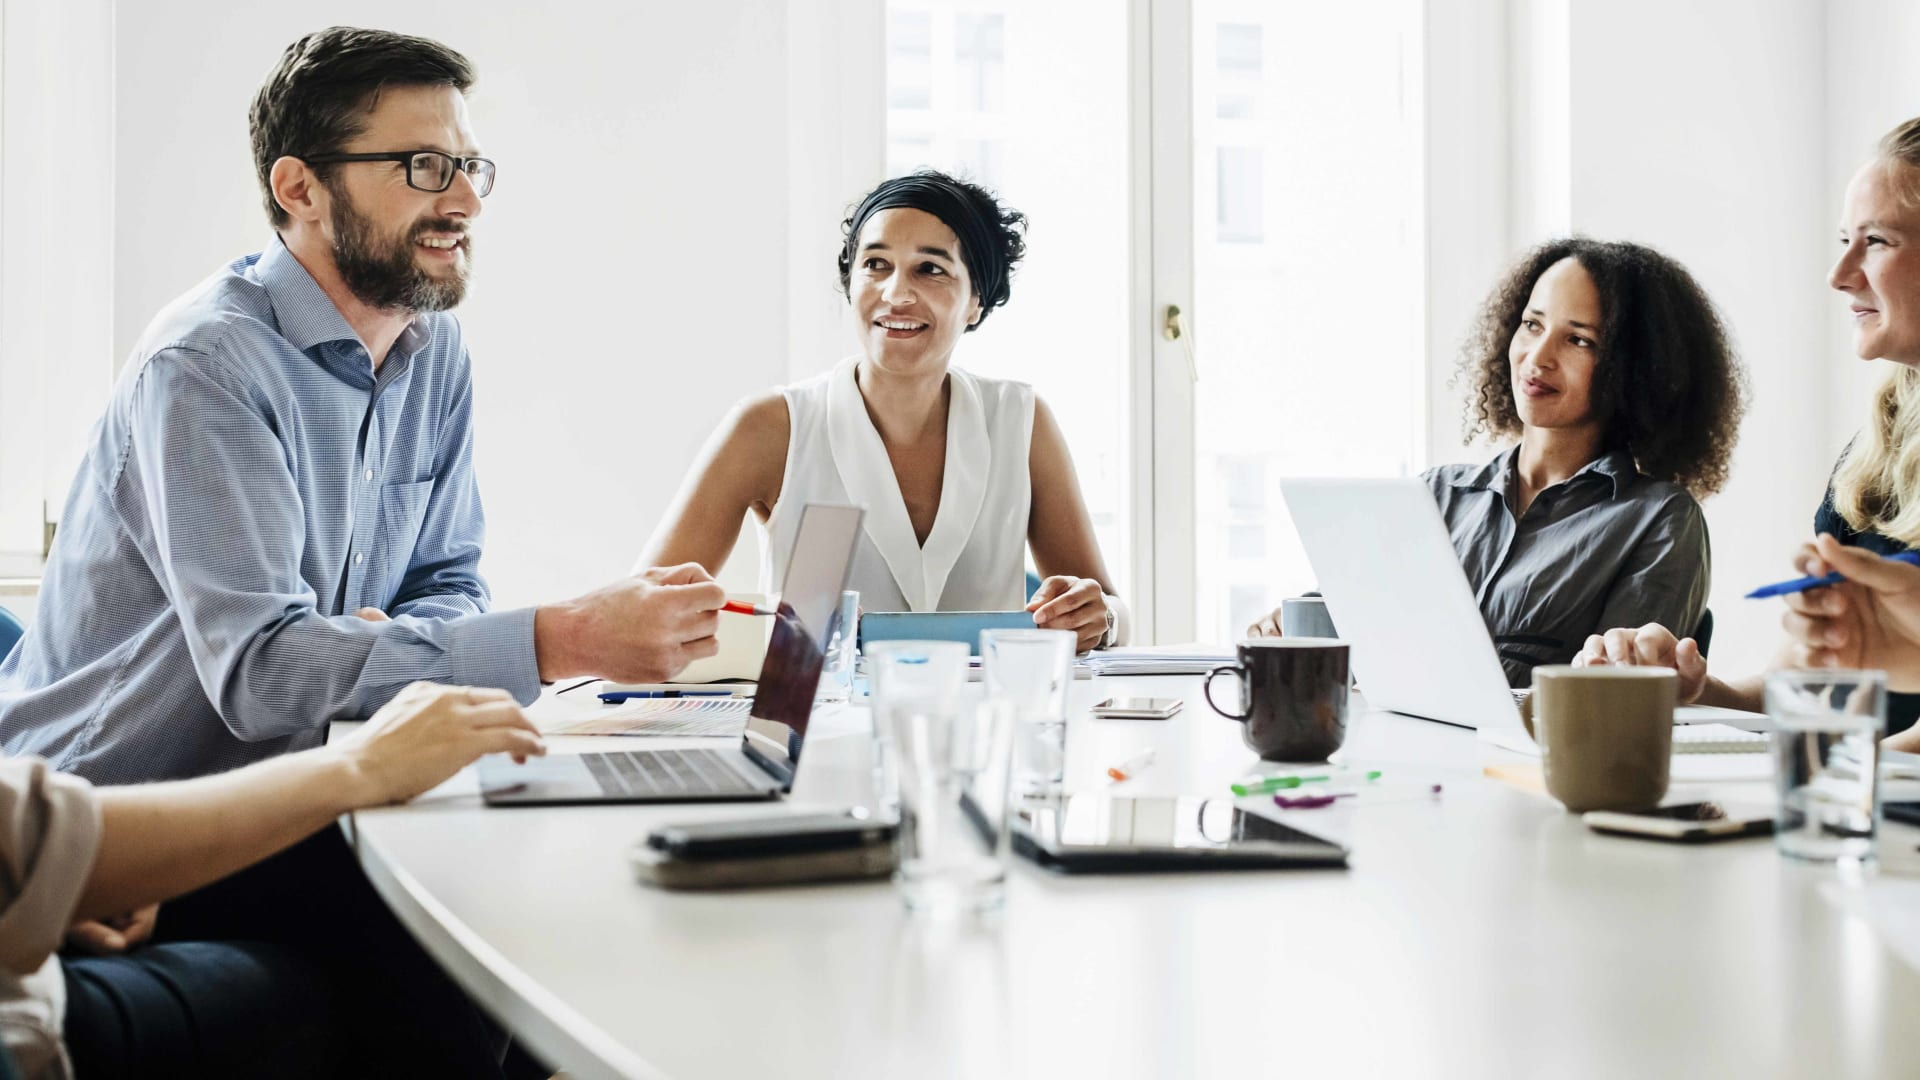 3 Things to Cover During Your Mentoring Sessions